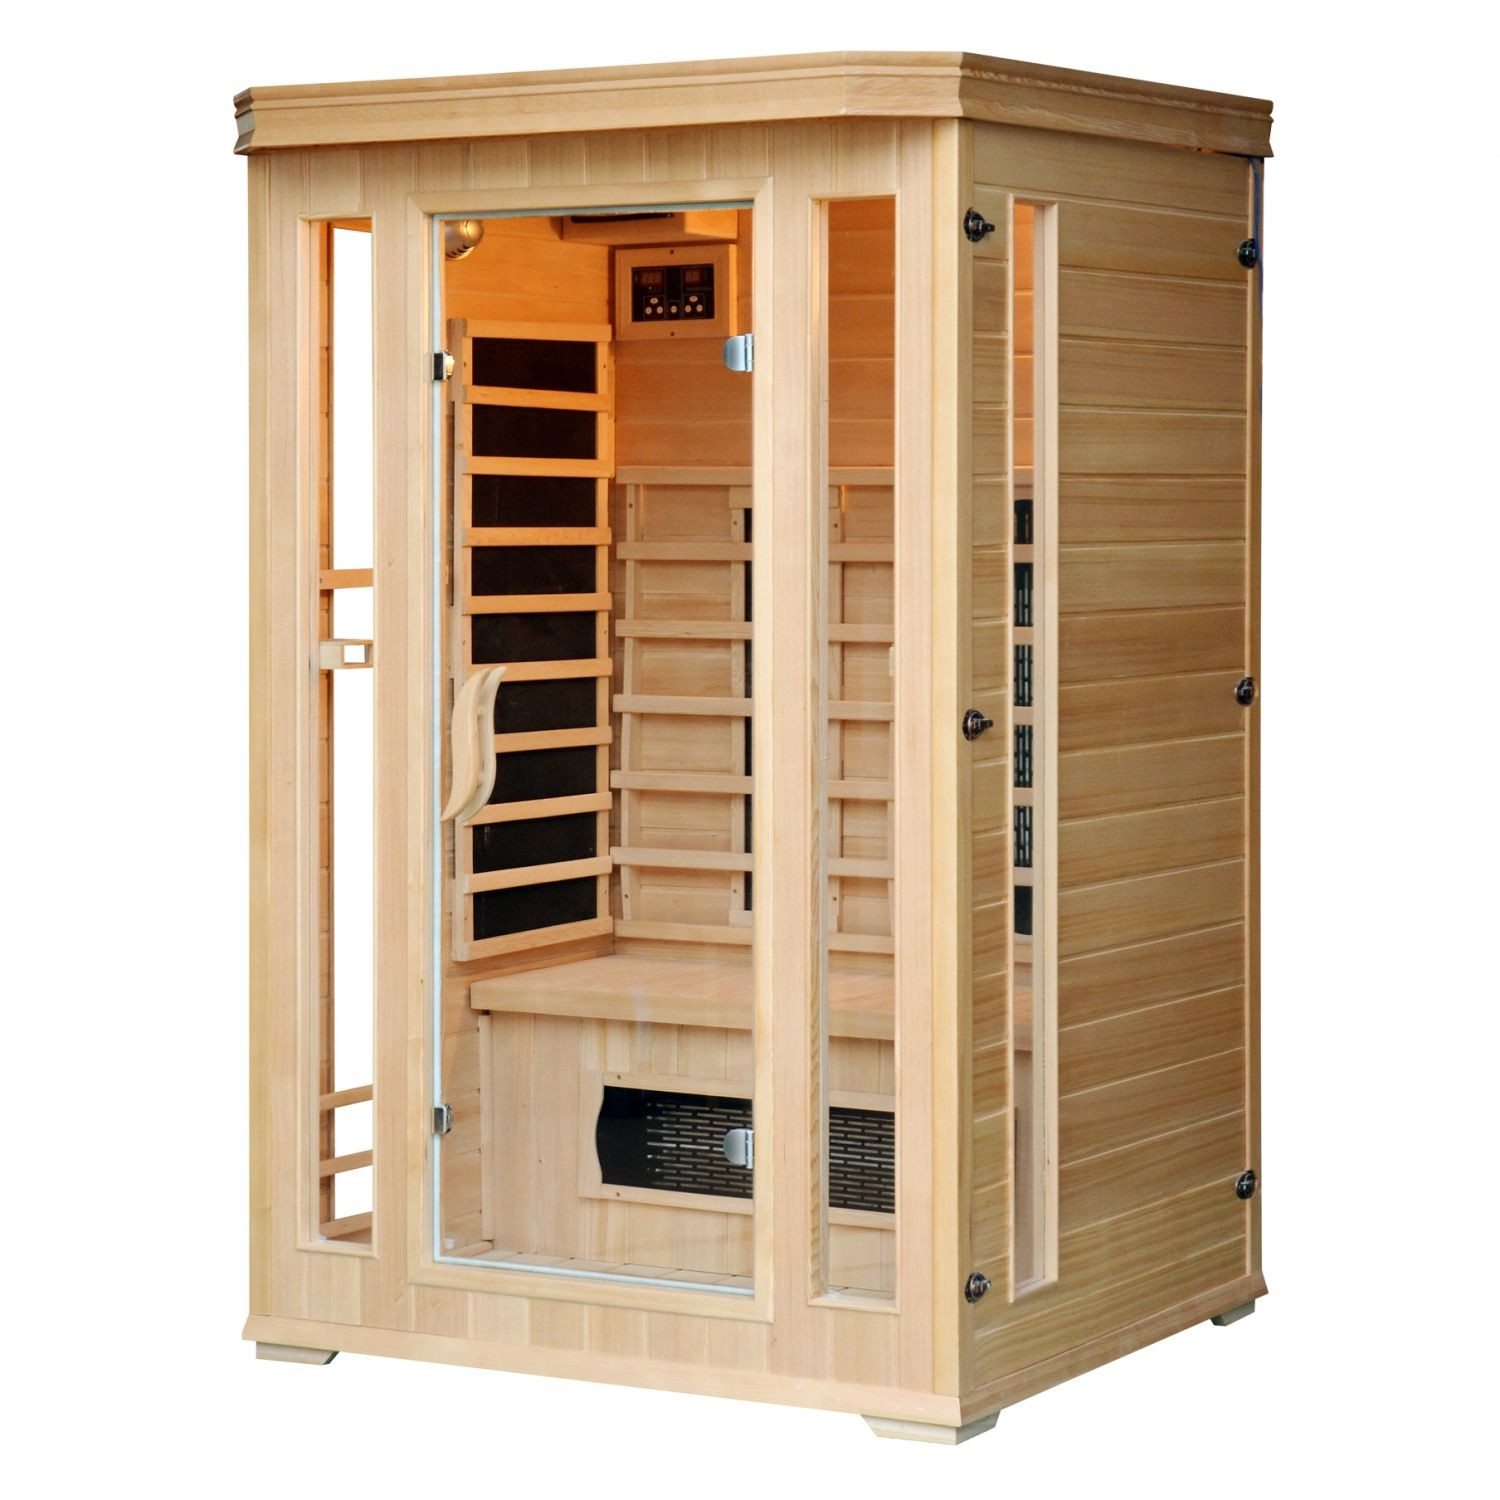 horten sauna 2 places technologie infrarouge. Black Bedroom Furniture Sets. Home Design Ideas